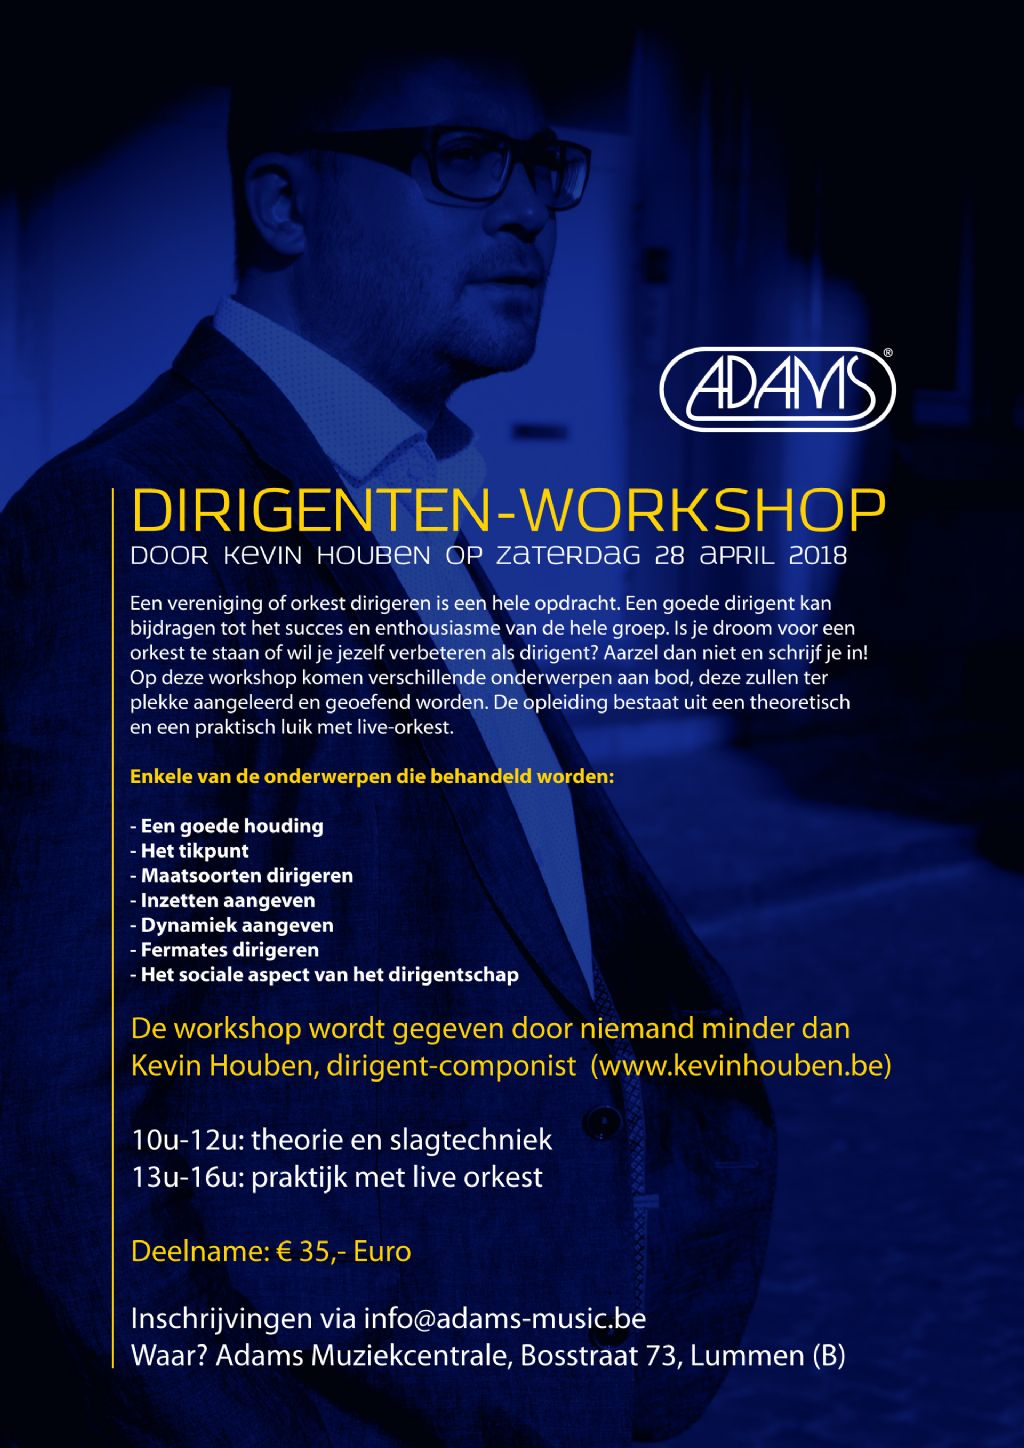 DIRIGENTEN-WORKSHOP door Kevin Houben op zaterdag 28 april 2018